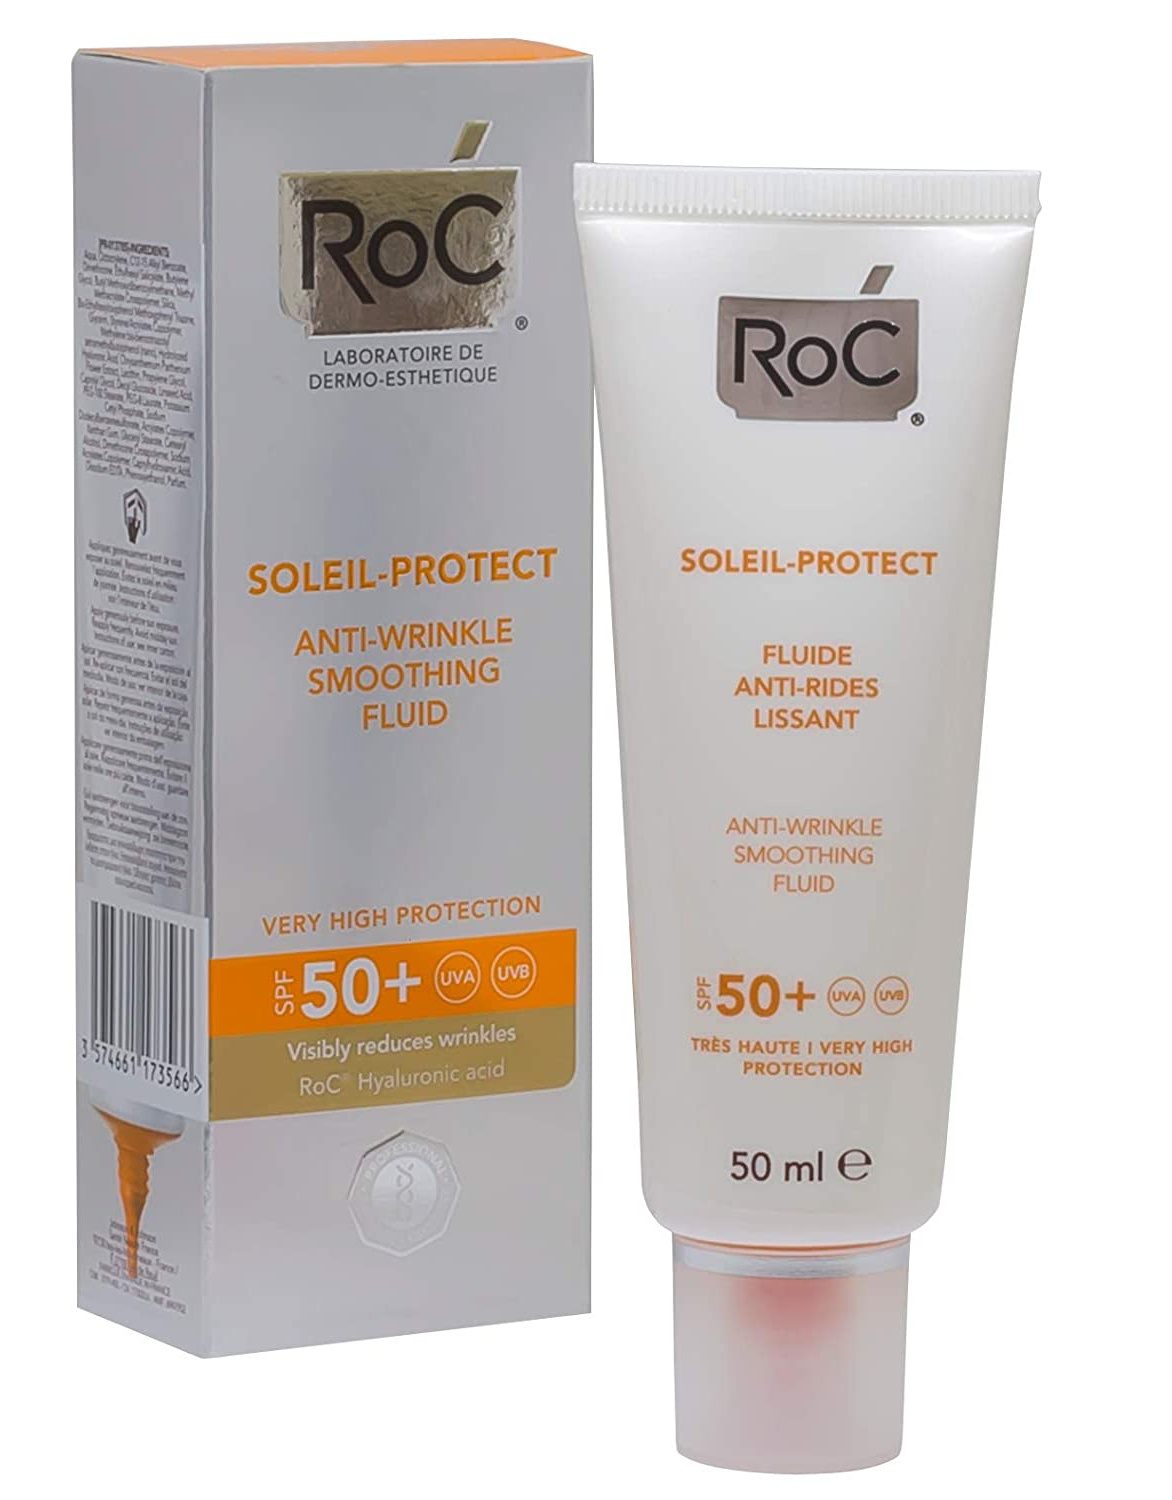 RoC Soleil-Protect Anti-Wrinkle Smoothing Fluid Spf 50+ Sun Products